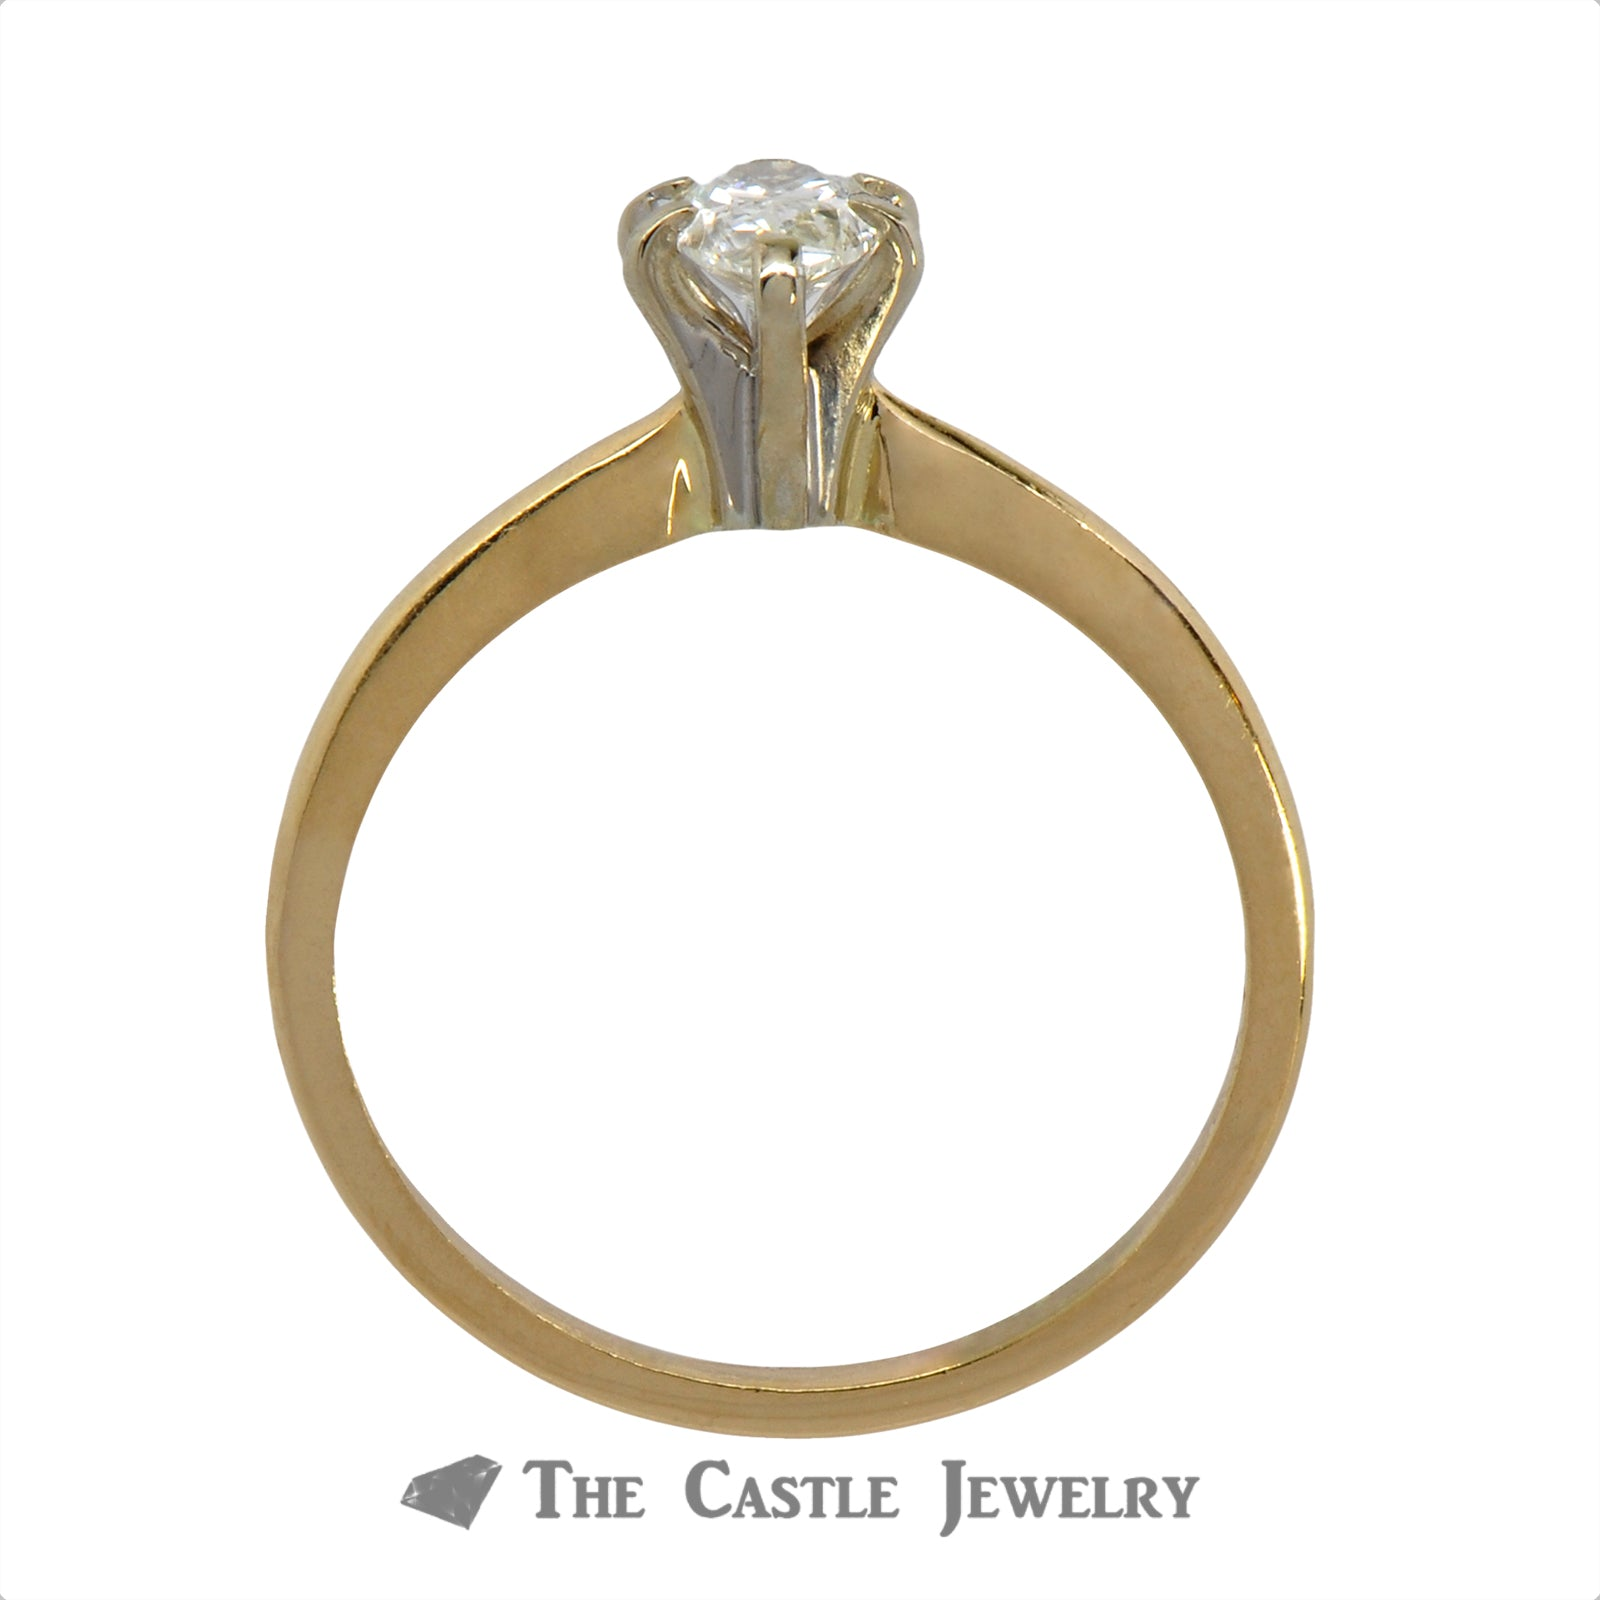 Pear Cut 1/2 carat Solitaire Engagement Ring in 14K Yellow Gold-1